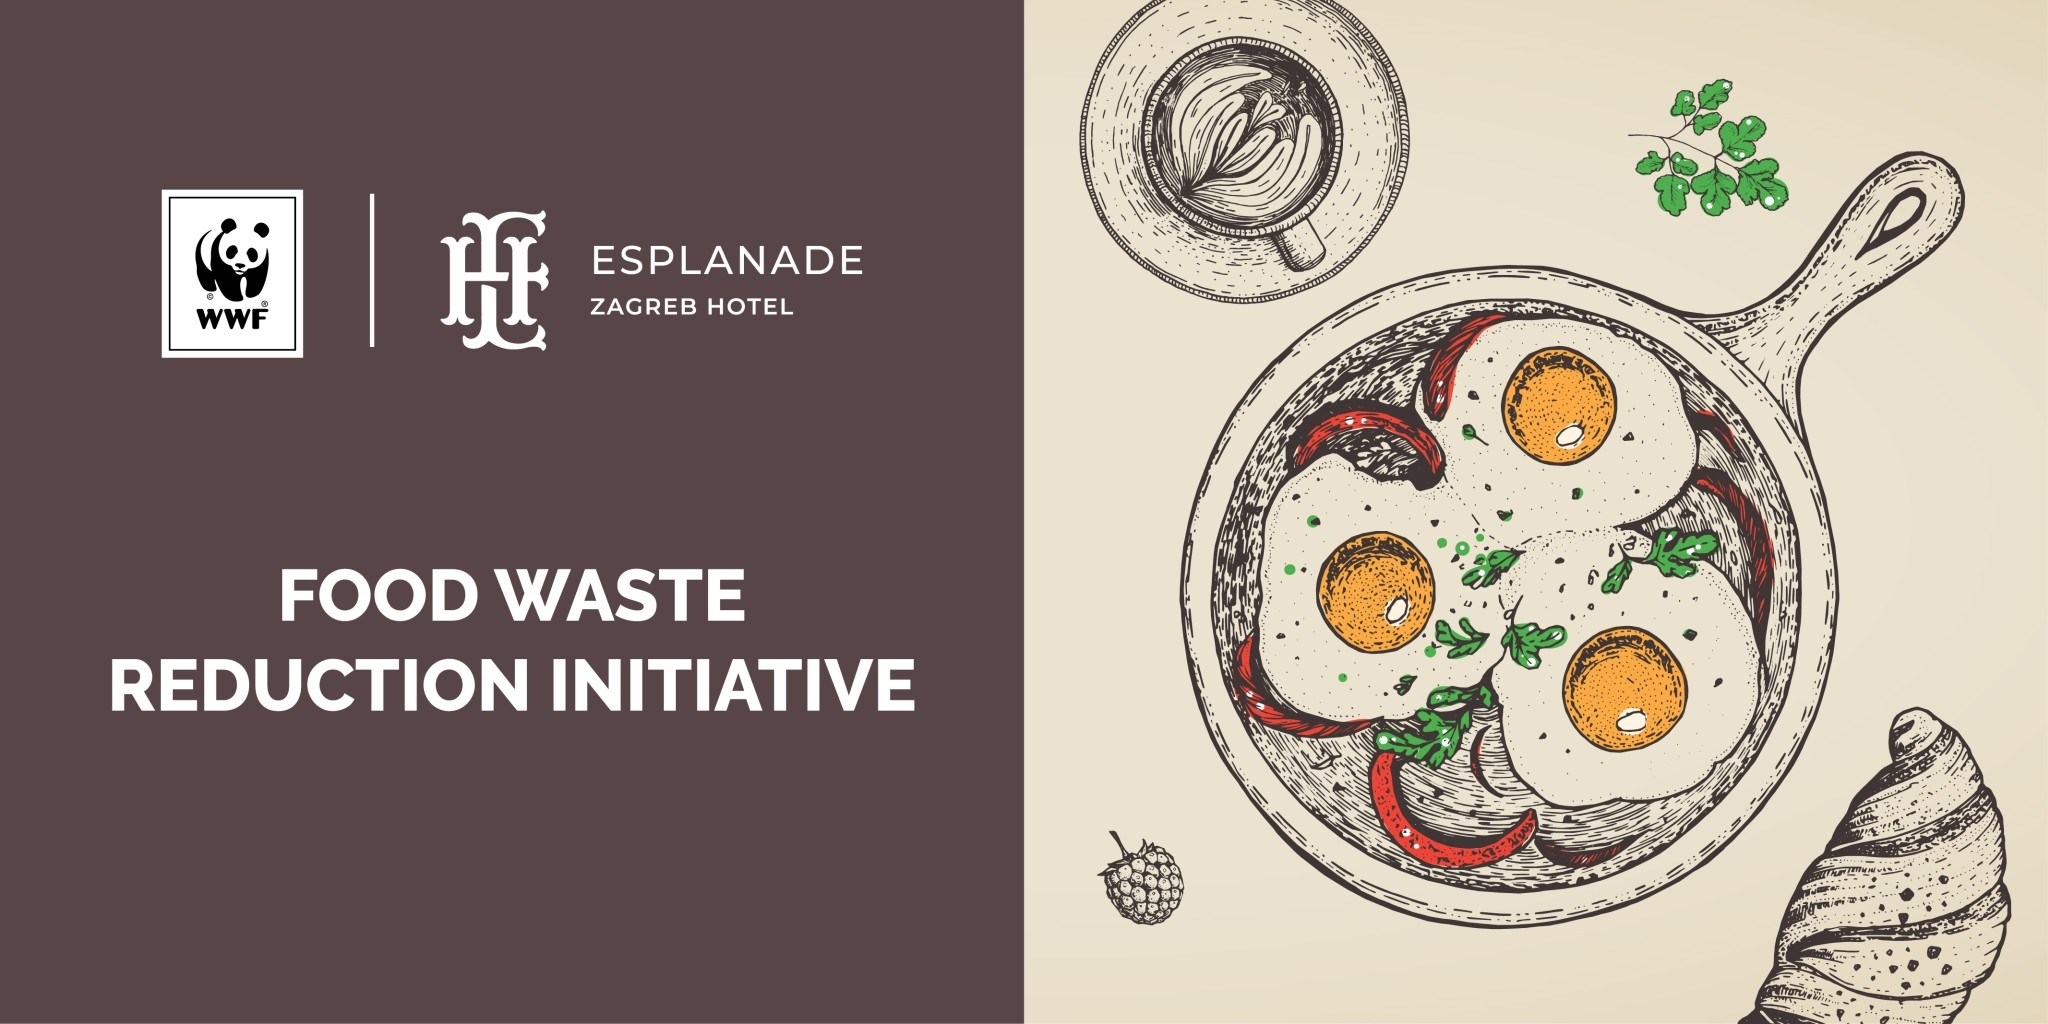 Zagreb's Esplanade Hotel Is the First in Croatia to Recognise WWF's 'Food Waste' Global Initiative  – Aimed at Reducing Food Waste